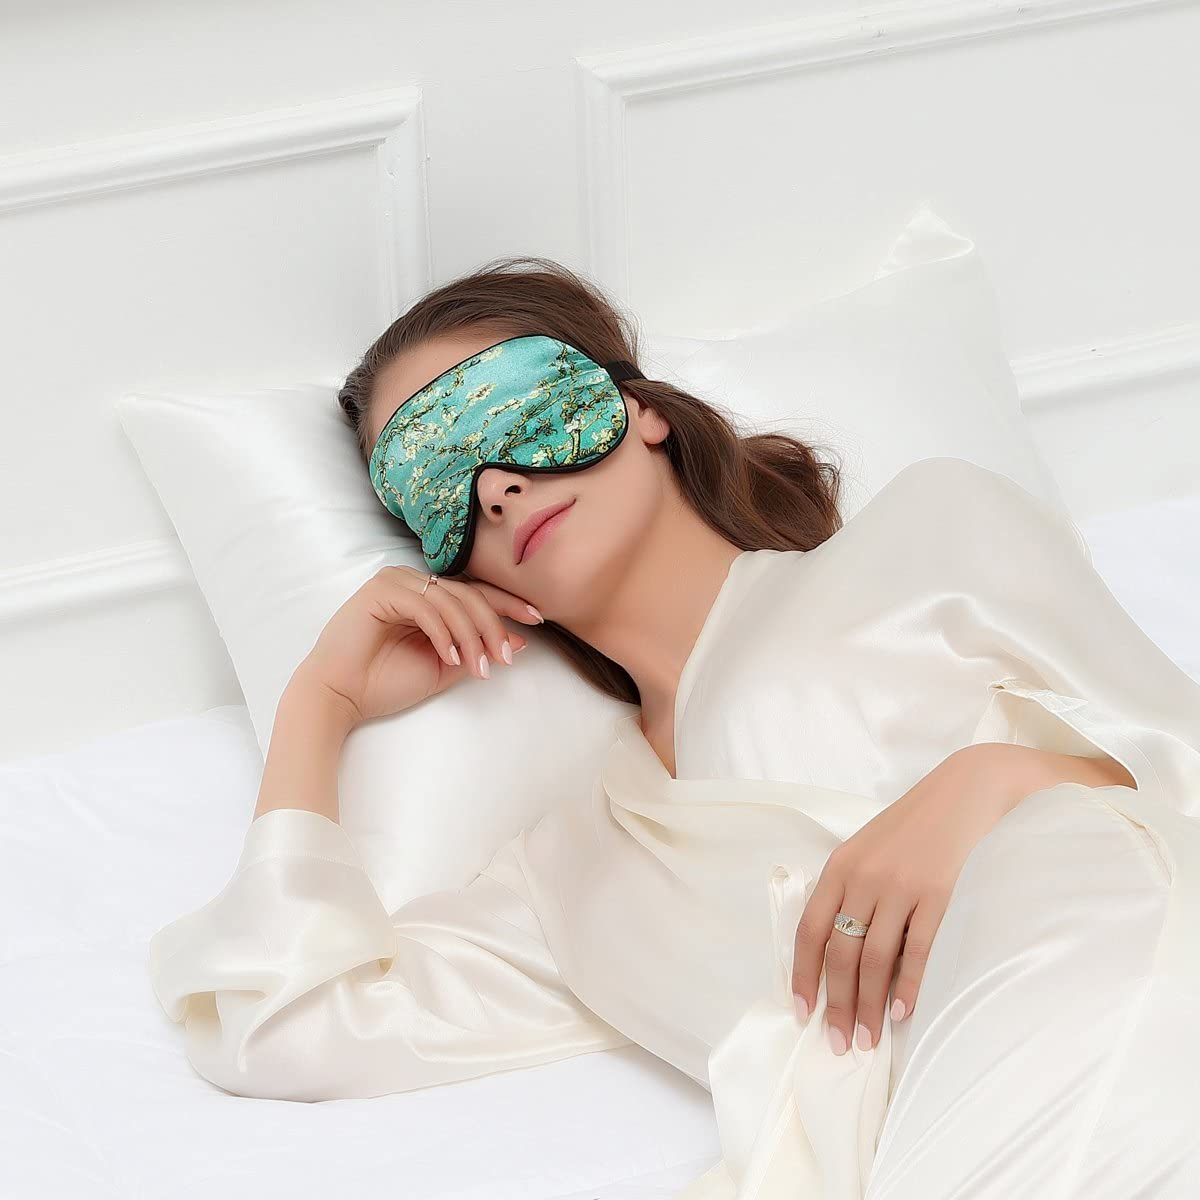 Alaska Bear Natural Silk Sleep Mask Helps You